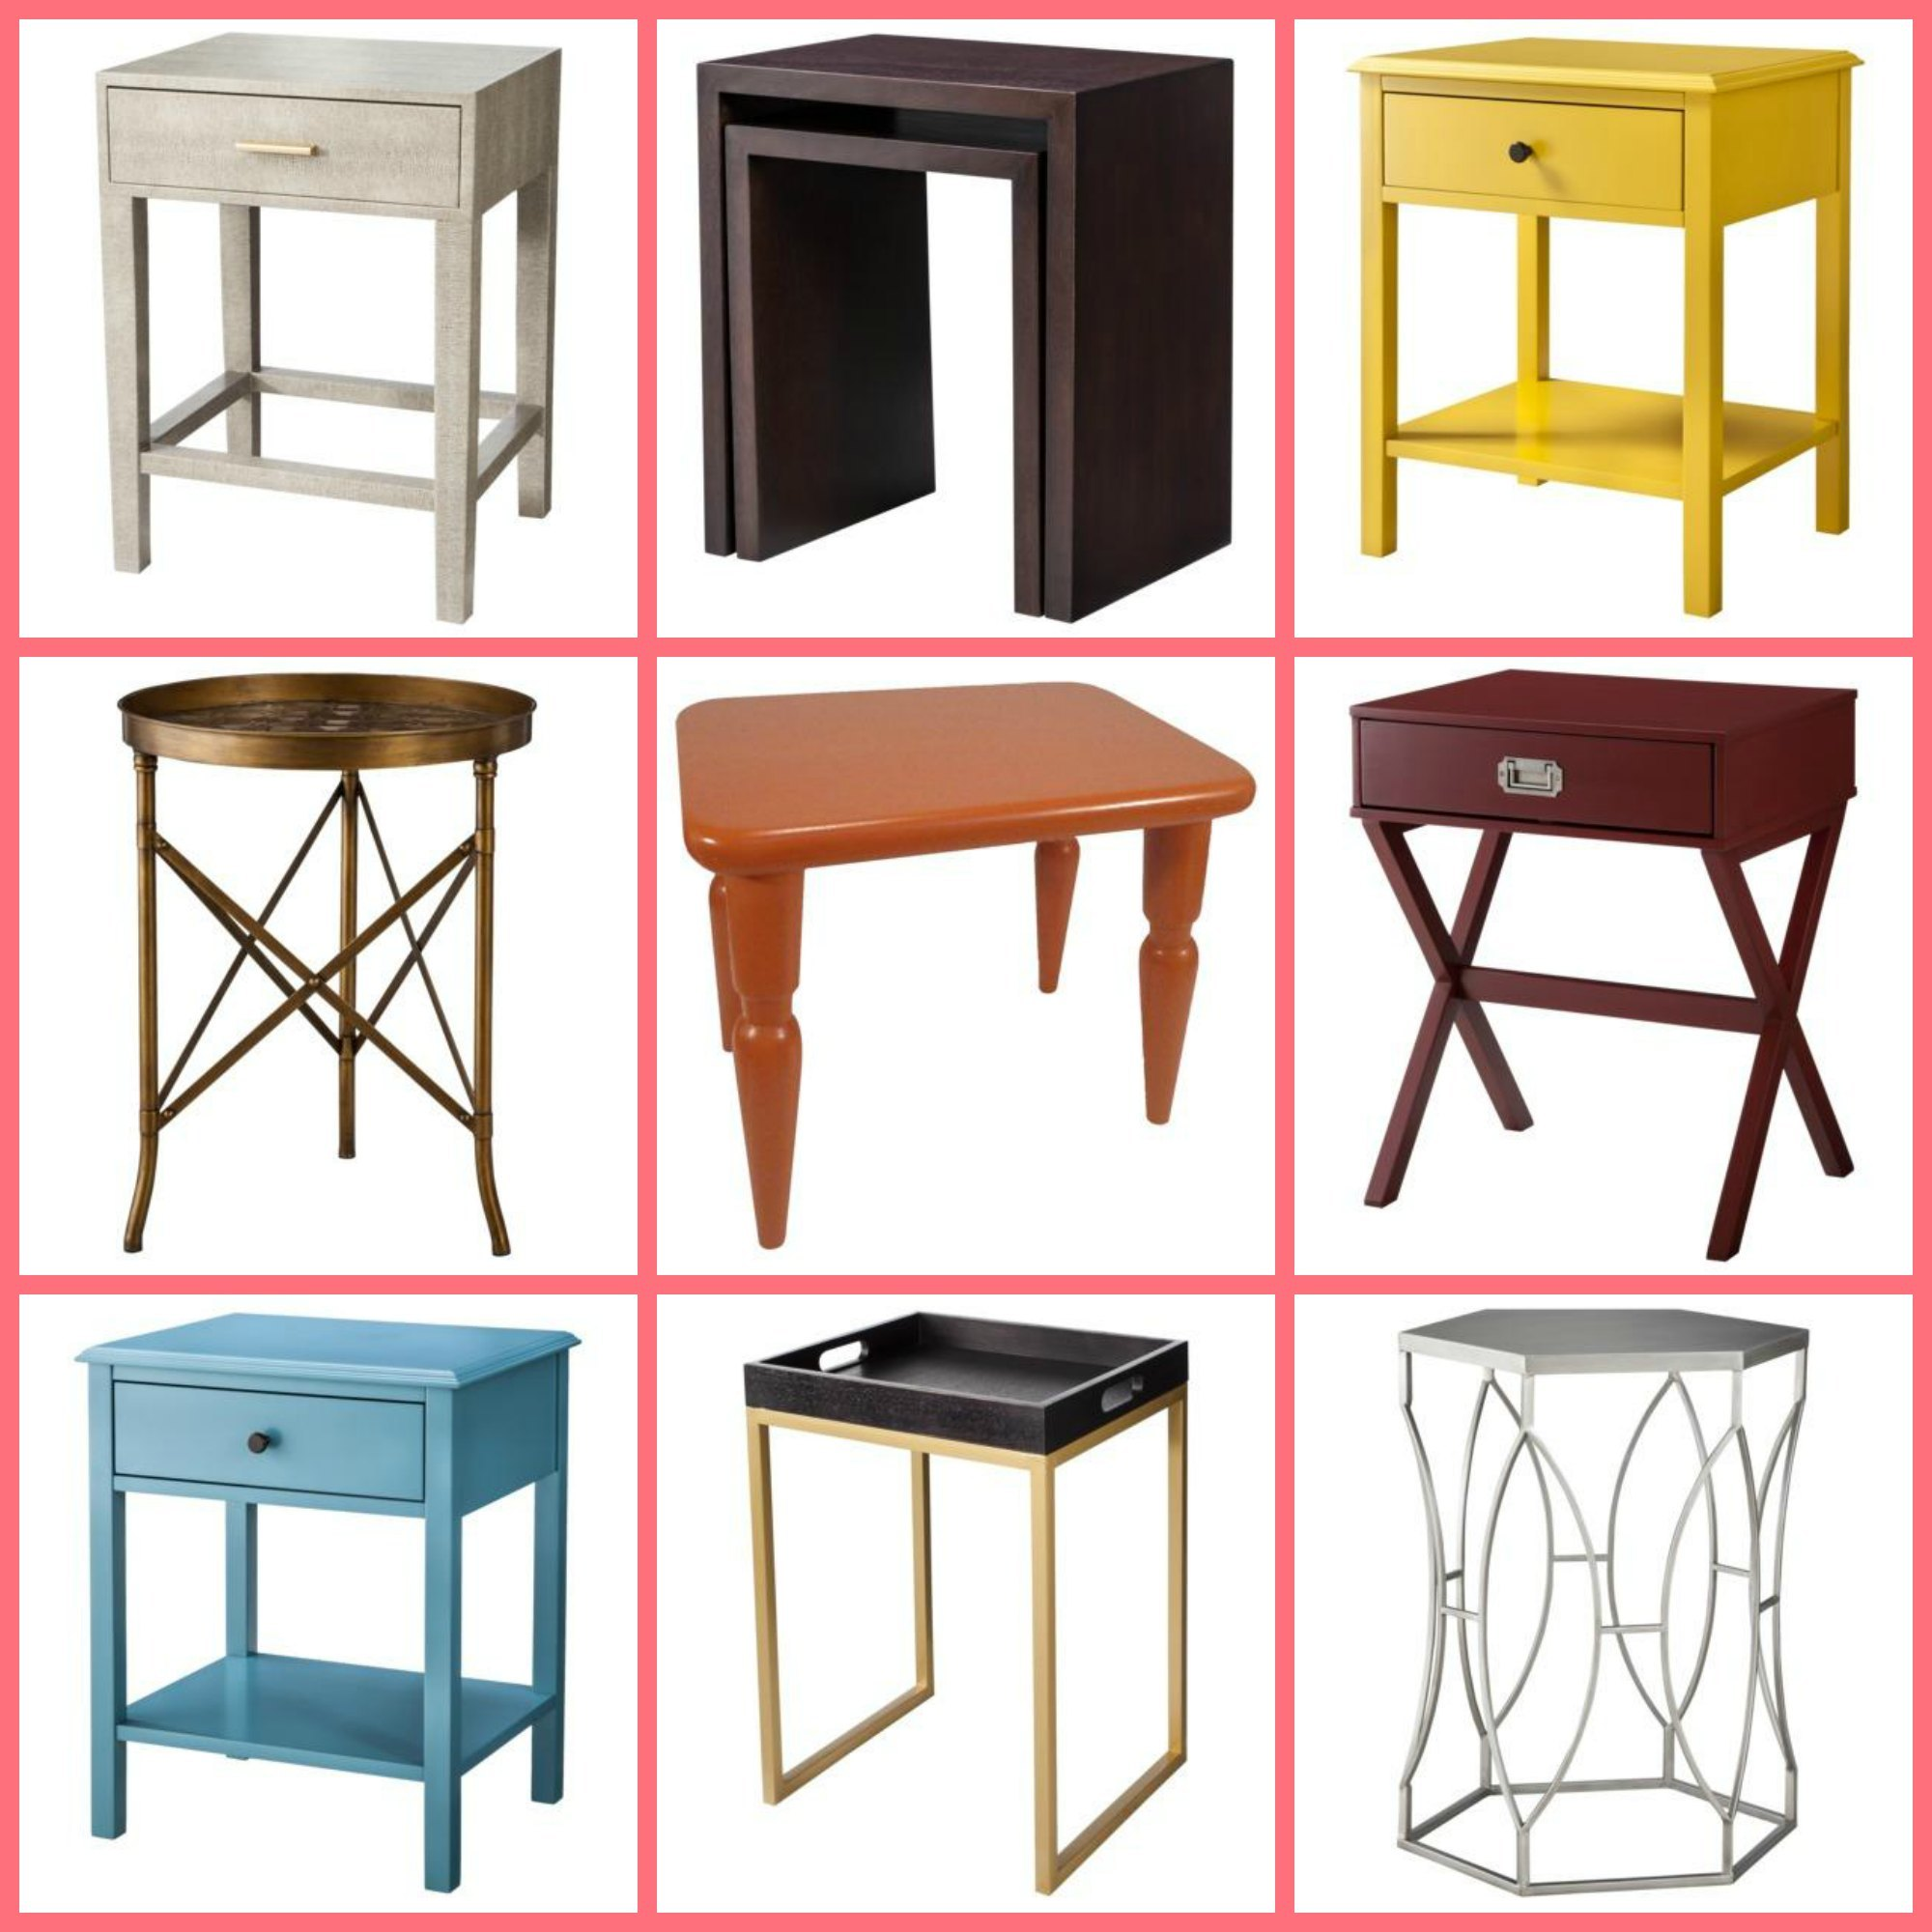 target threshold accent tables take your targertthr hourglass table clockwise from top left nautical shelf hampton bay wicker ikea childrens storage units sun umbrella stand